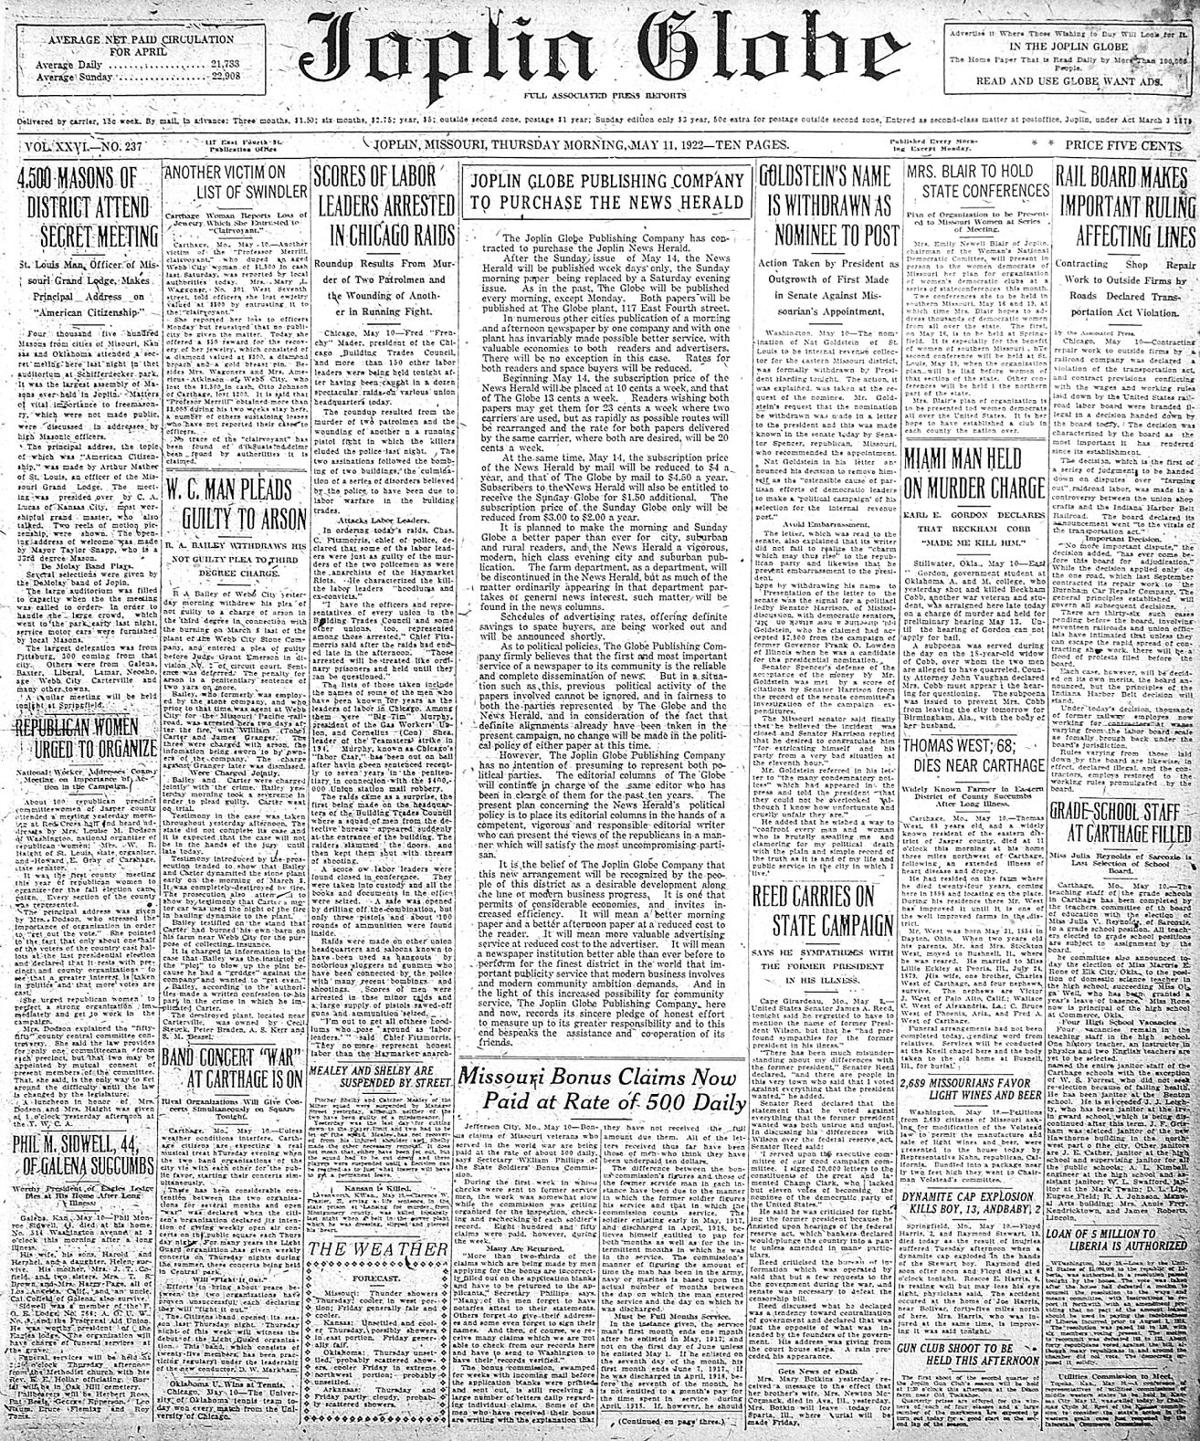 May 11, 1922 front page